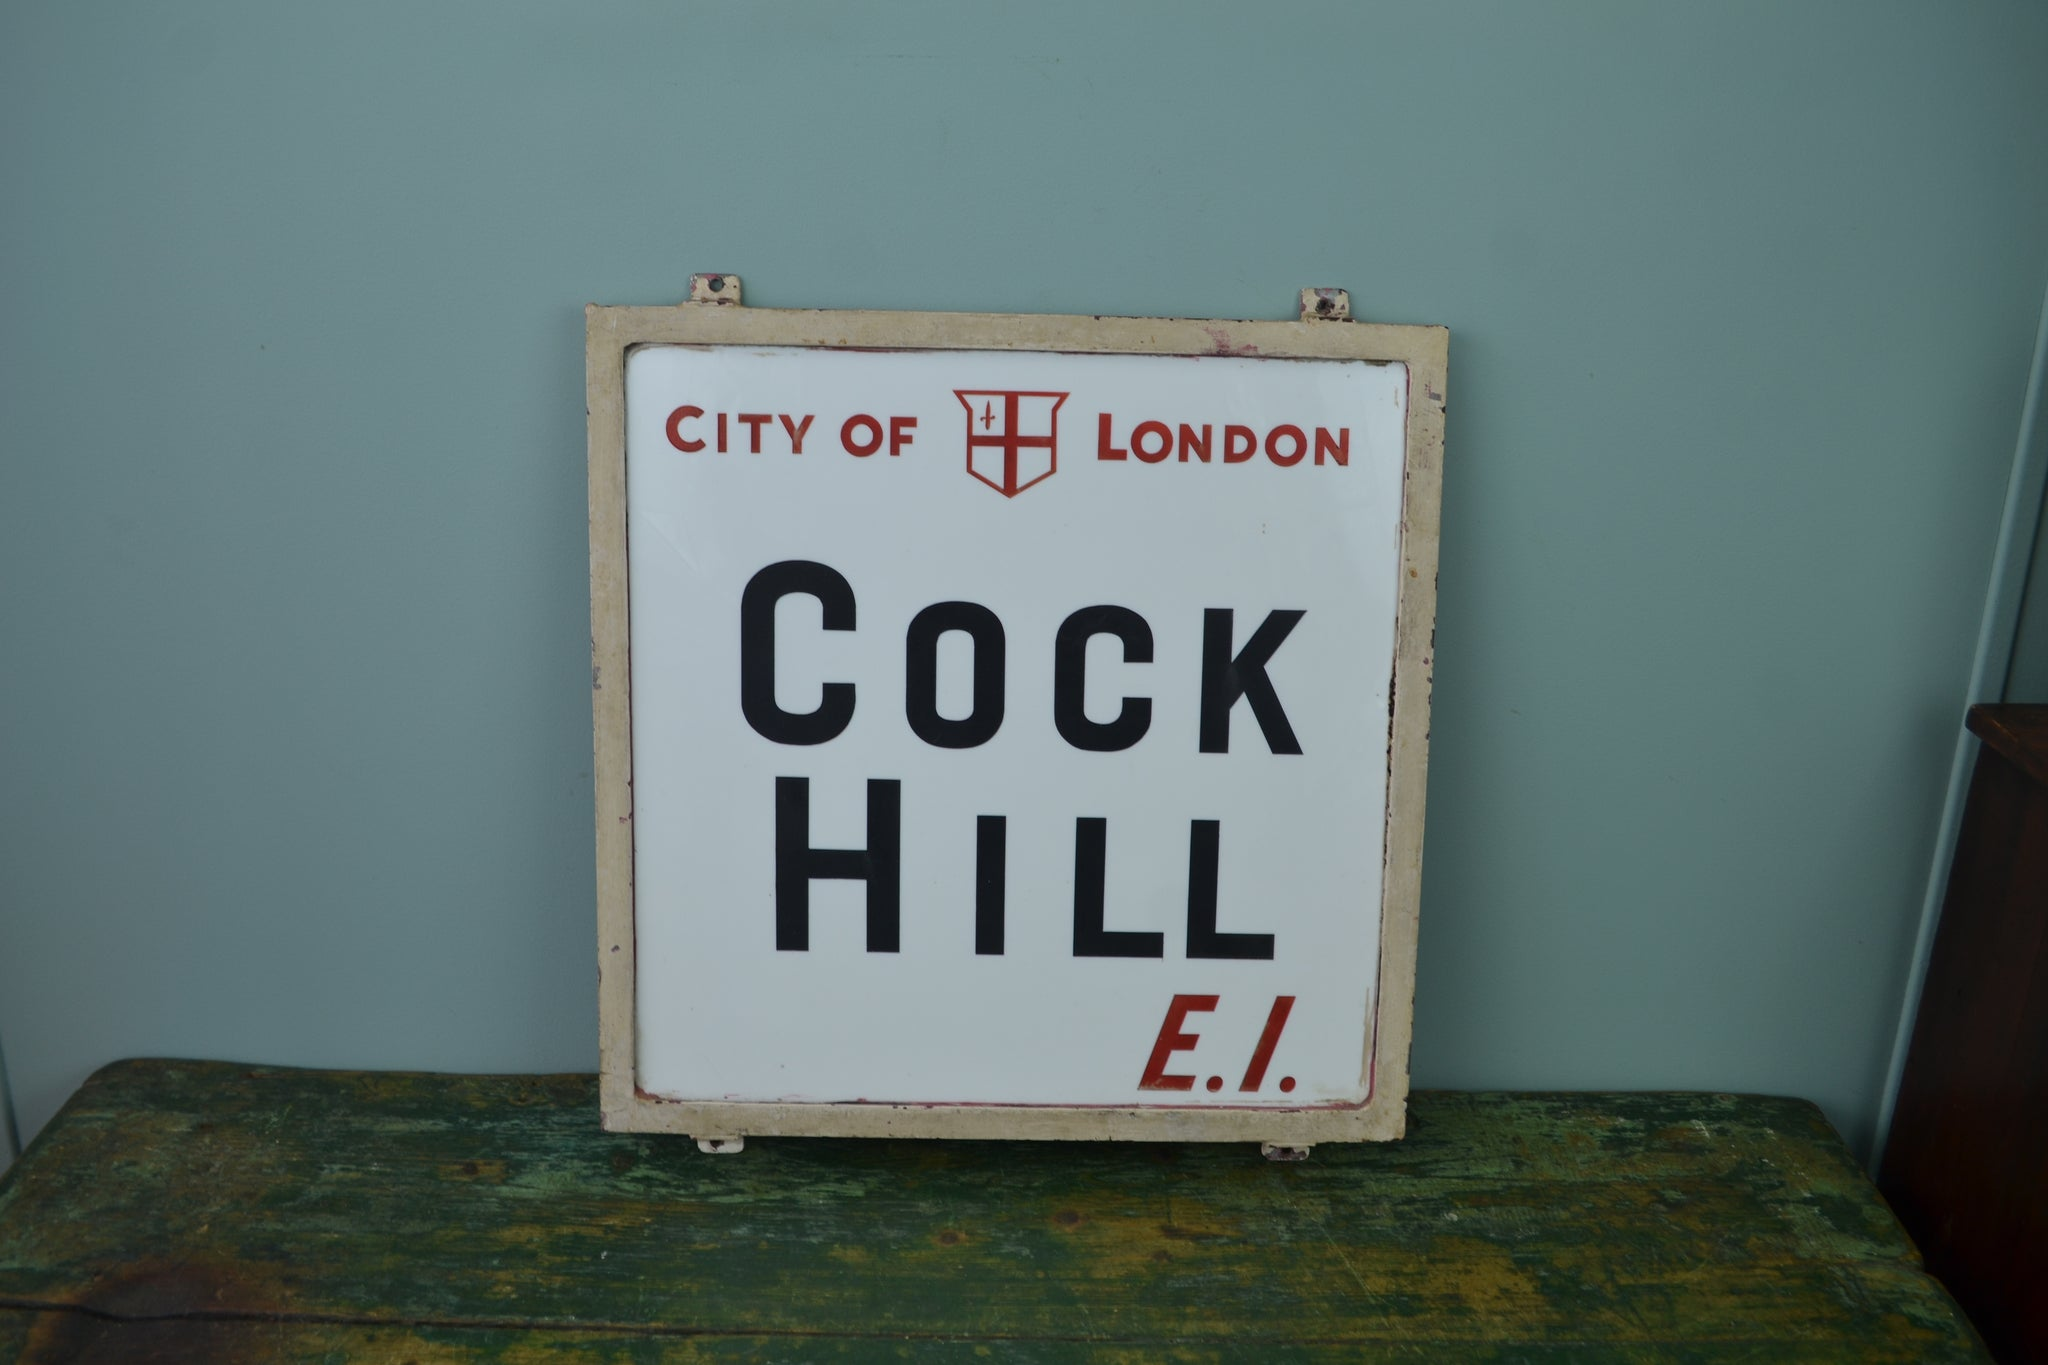 City of London milk glass sign - Cock Hill